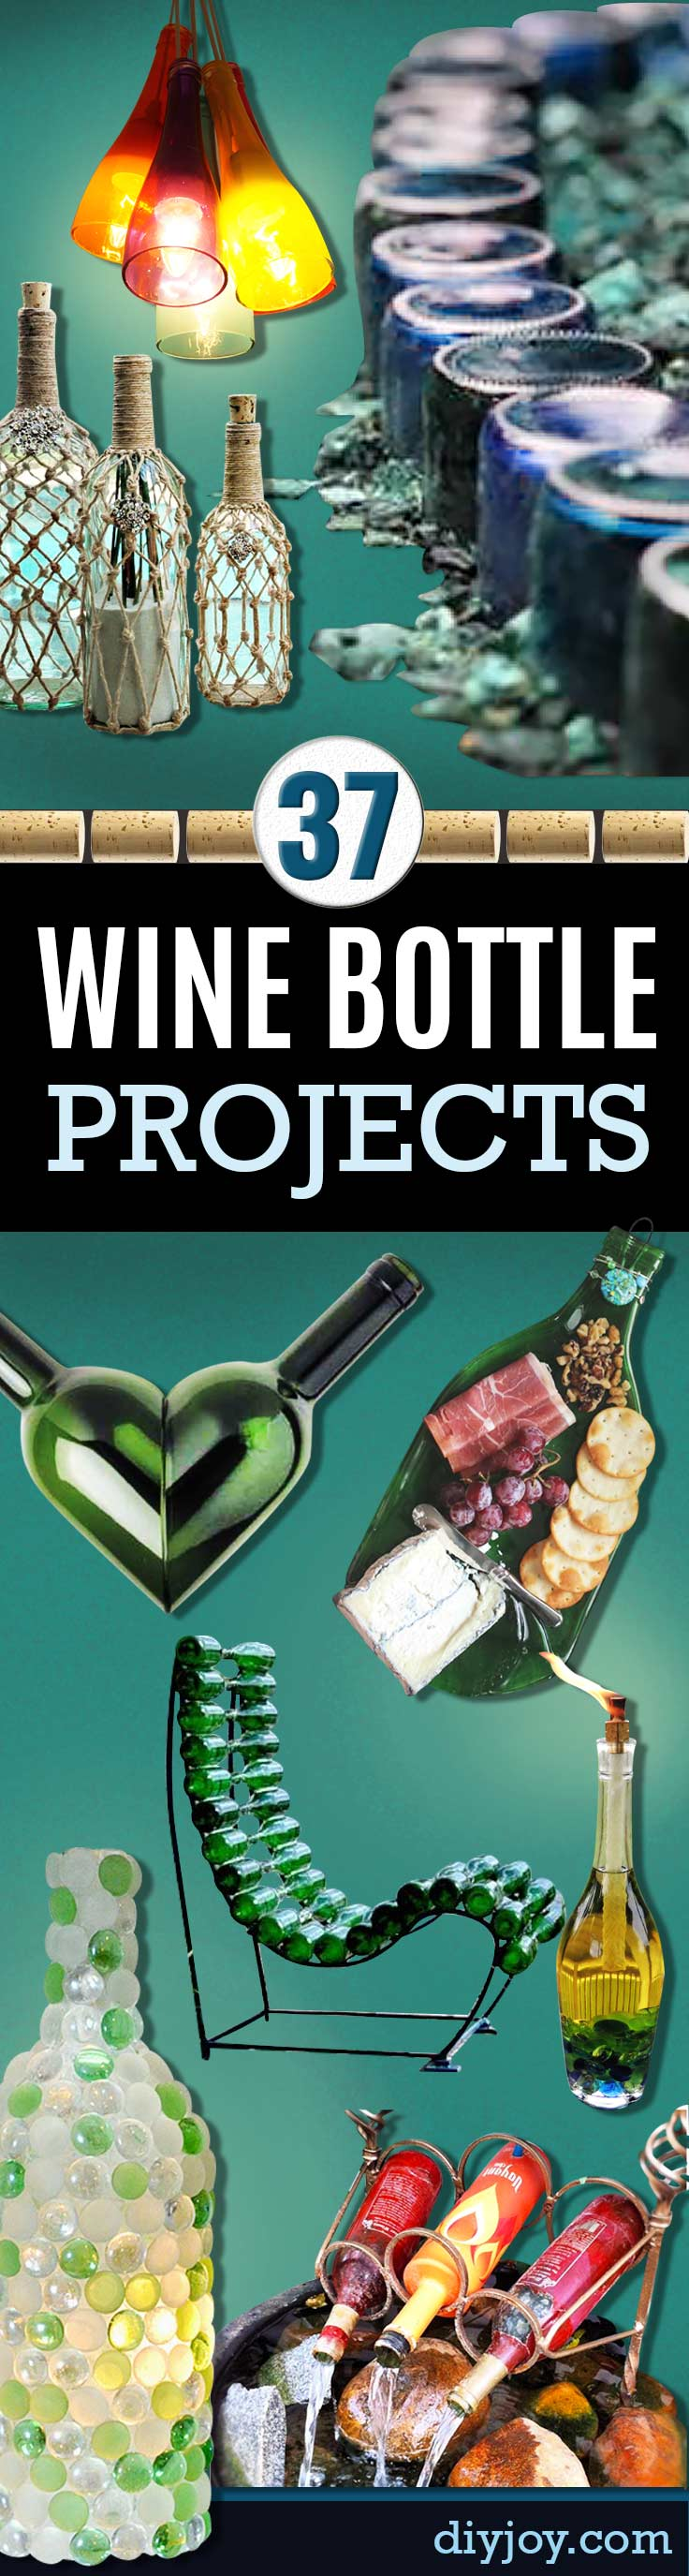 37 Wine Bottle Crafts - DIY Projects for Homemade Christmas Gifts - Craft Ideas With Wine Bottles - Chair, Walkway, Cheap DIY Home Decor